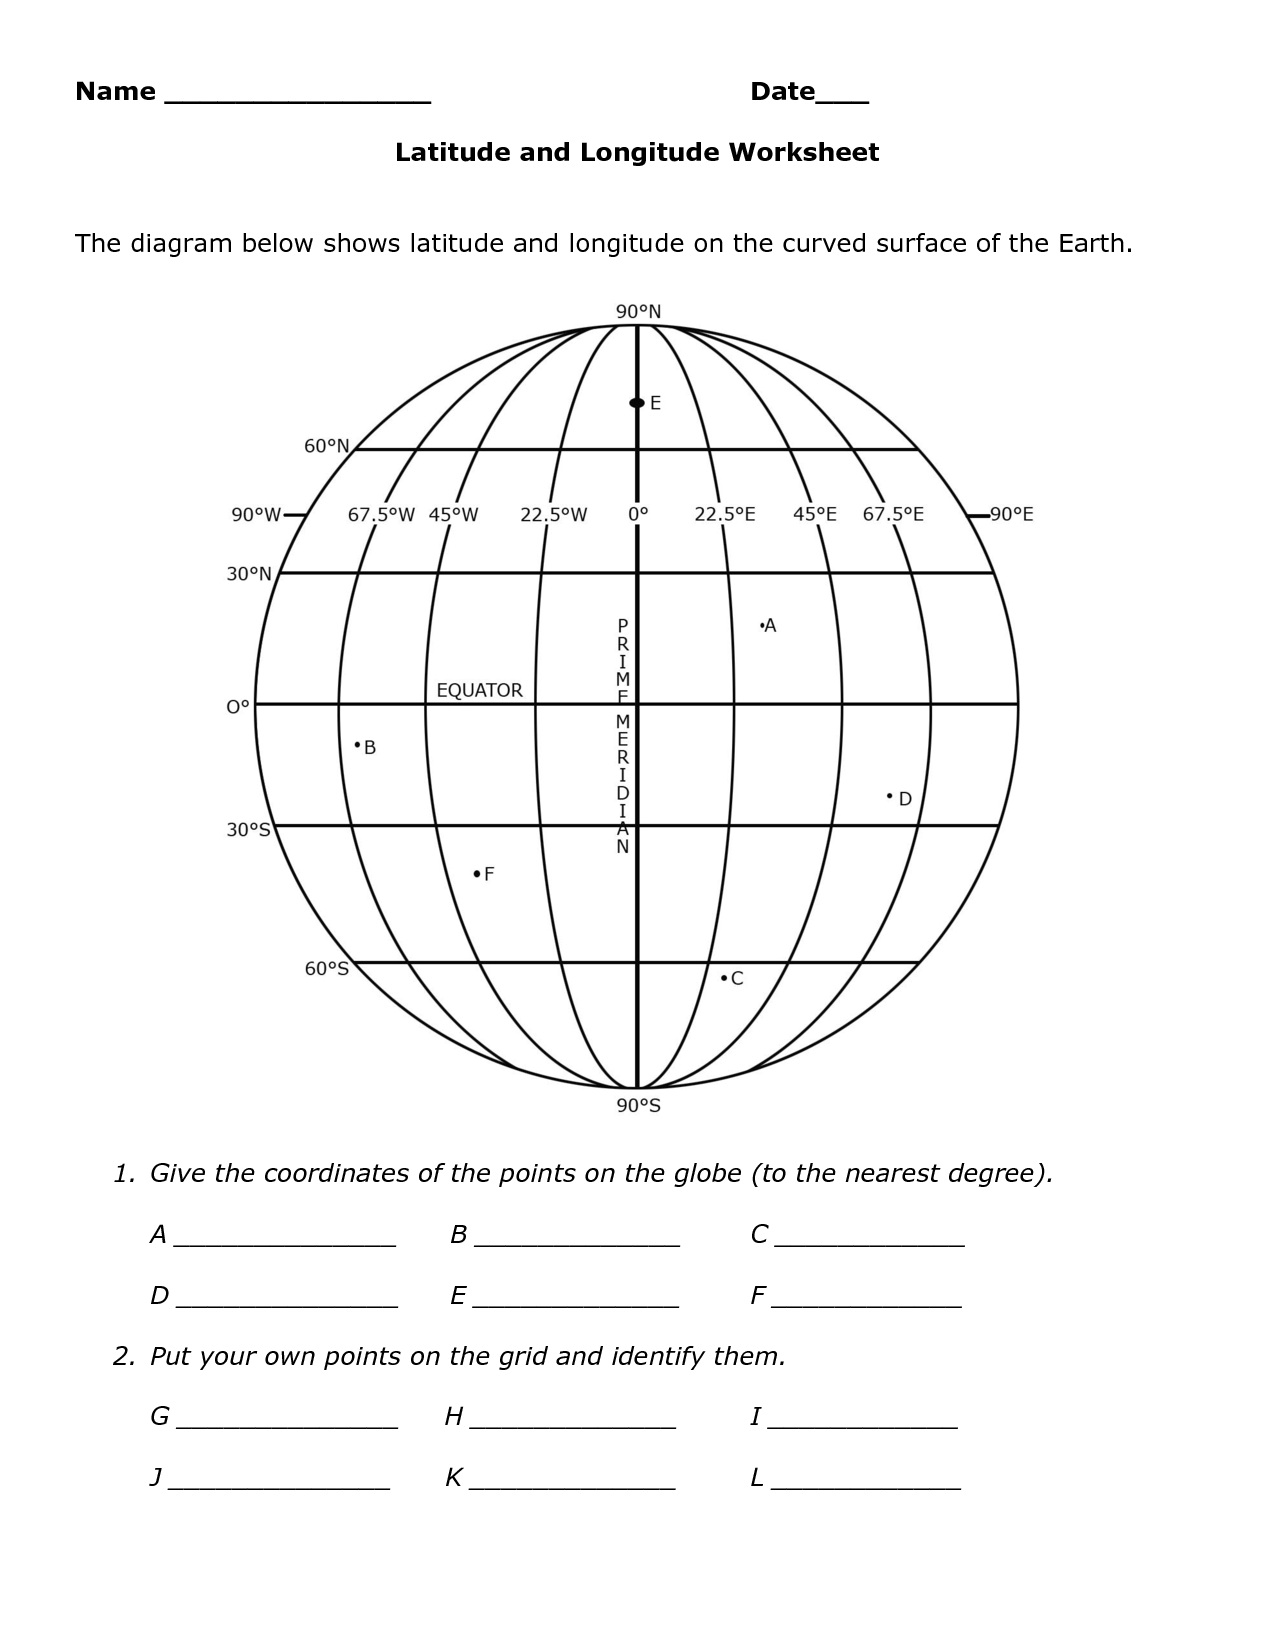 Worksheet Latitude And Longitude Practice Worksheets Grass Fedjp Worksheet Study Site